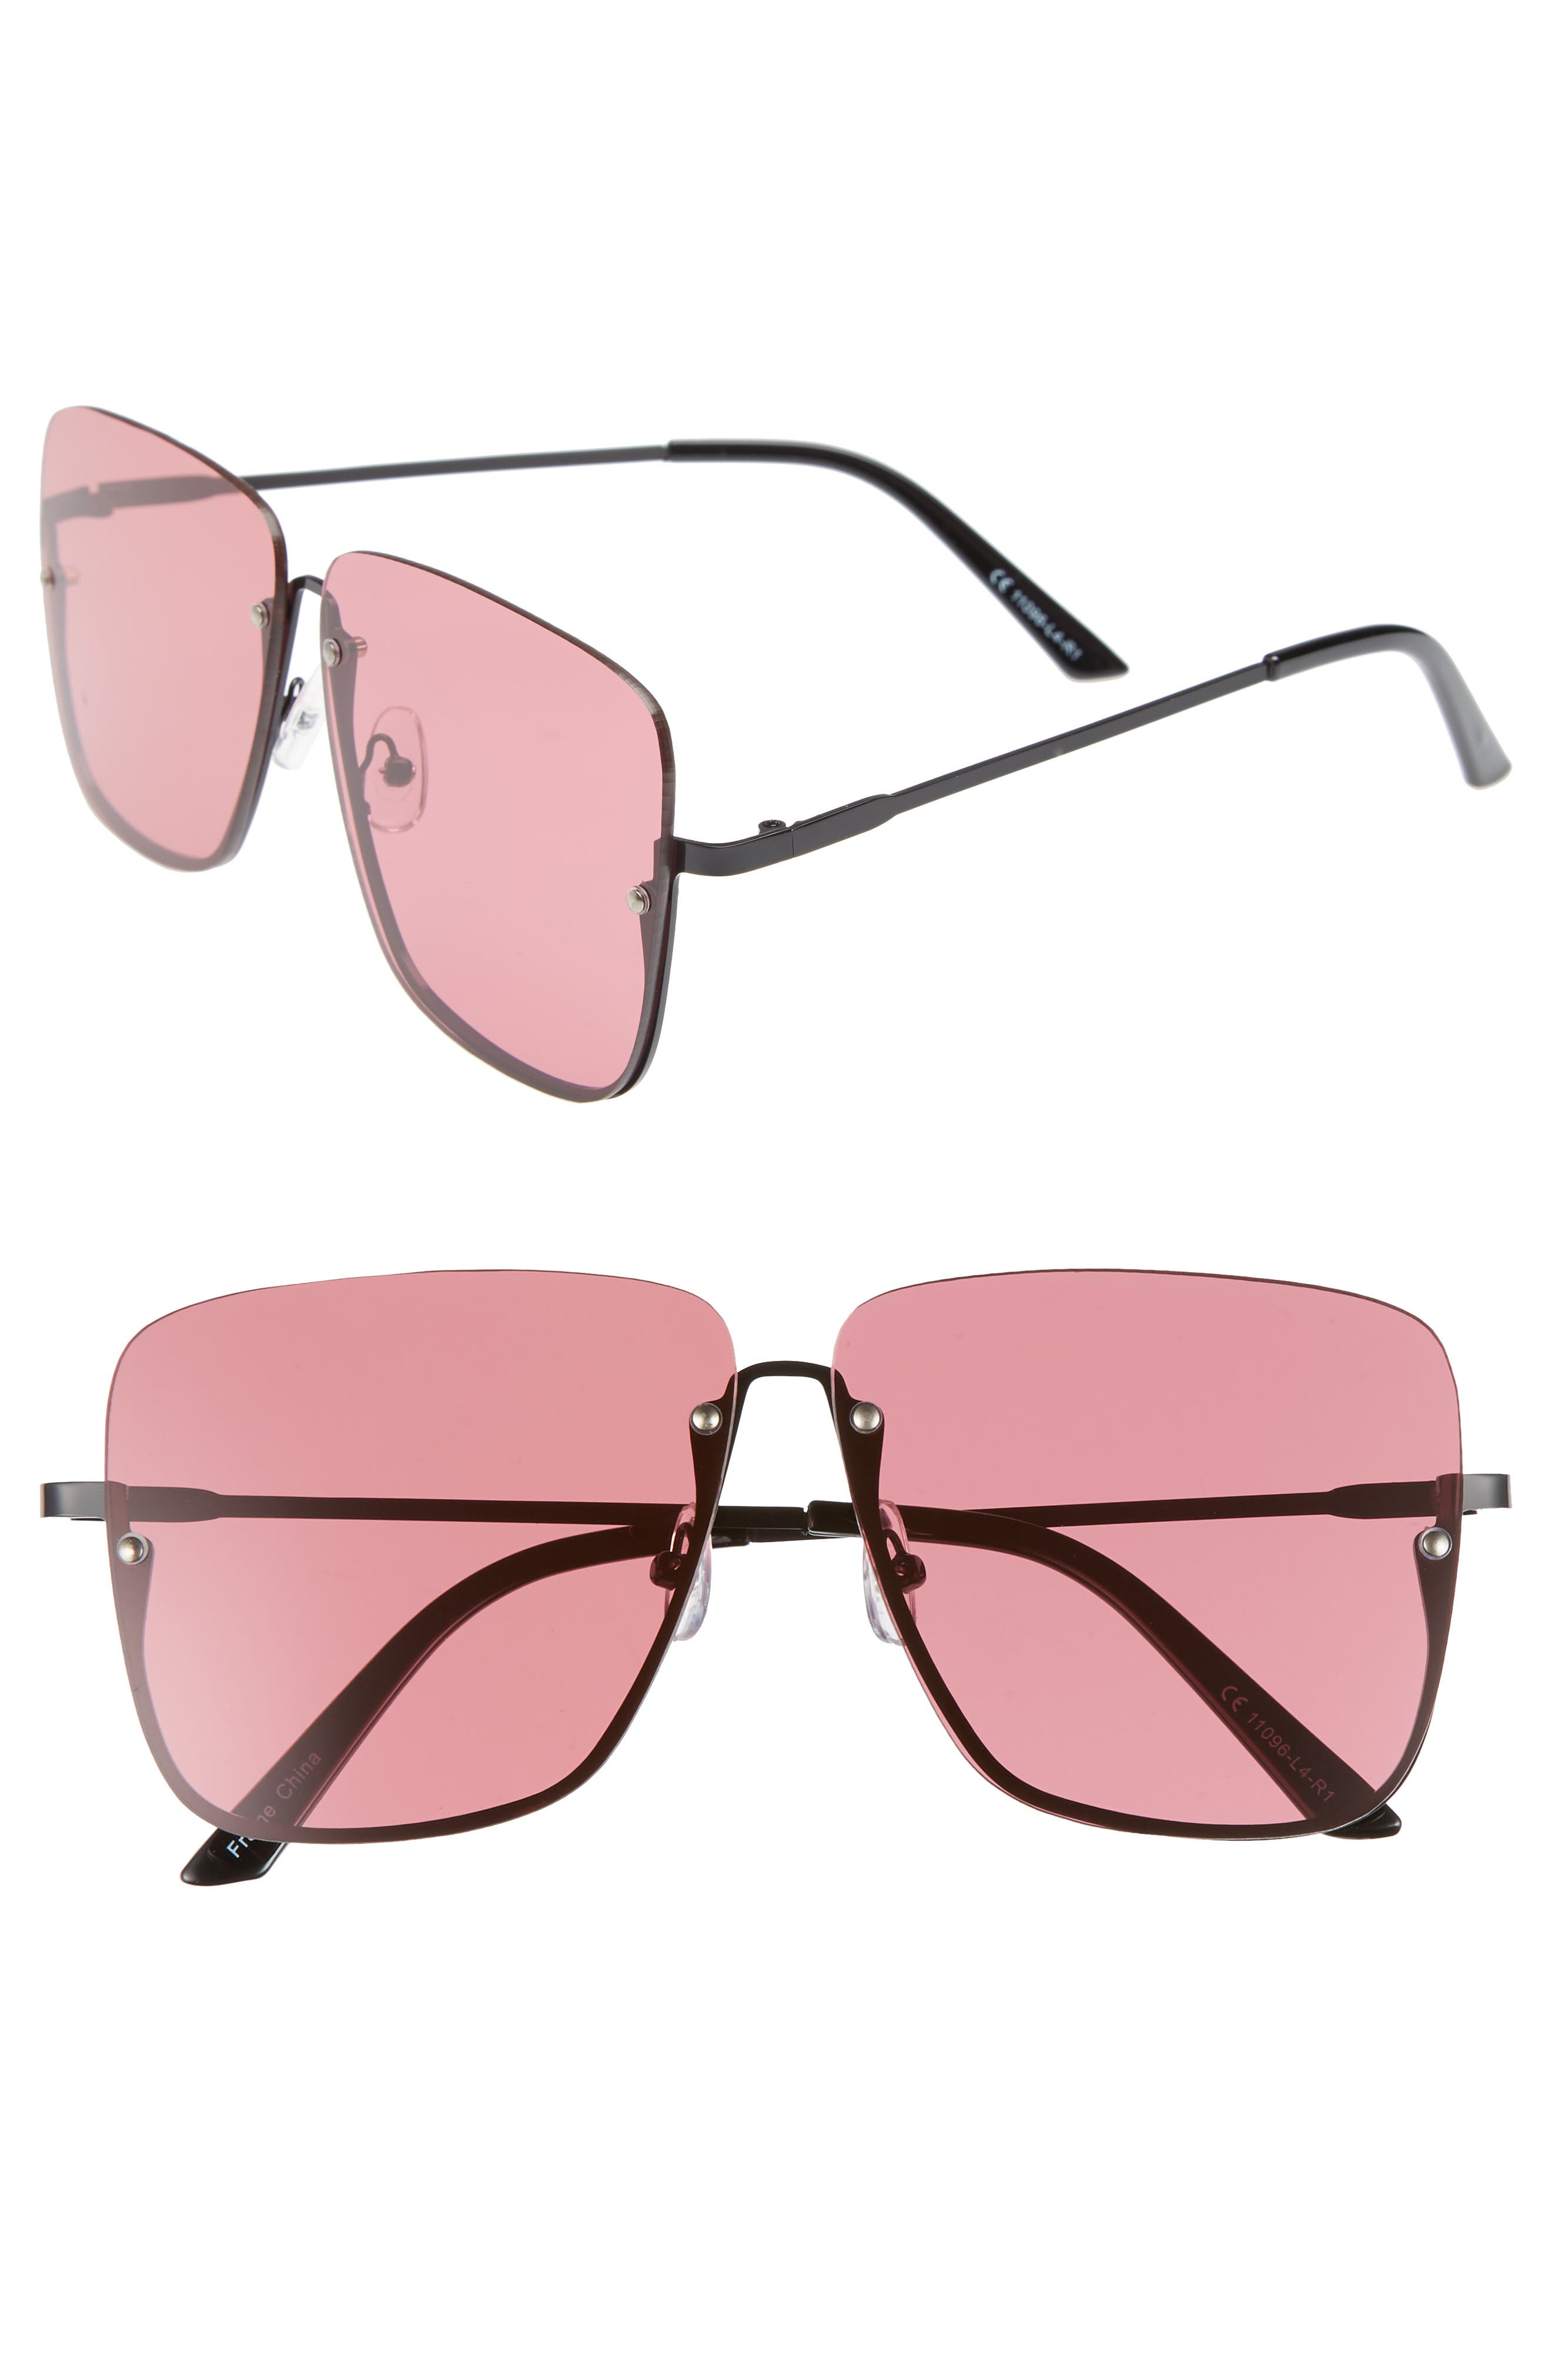 55mm Rimless Top Bar Square Sunglasses,                         Main,                         color, 001